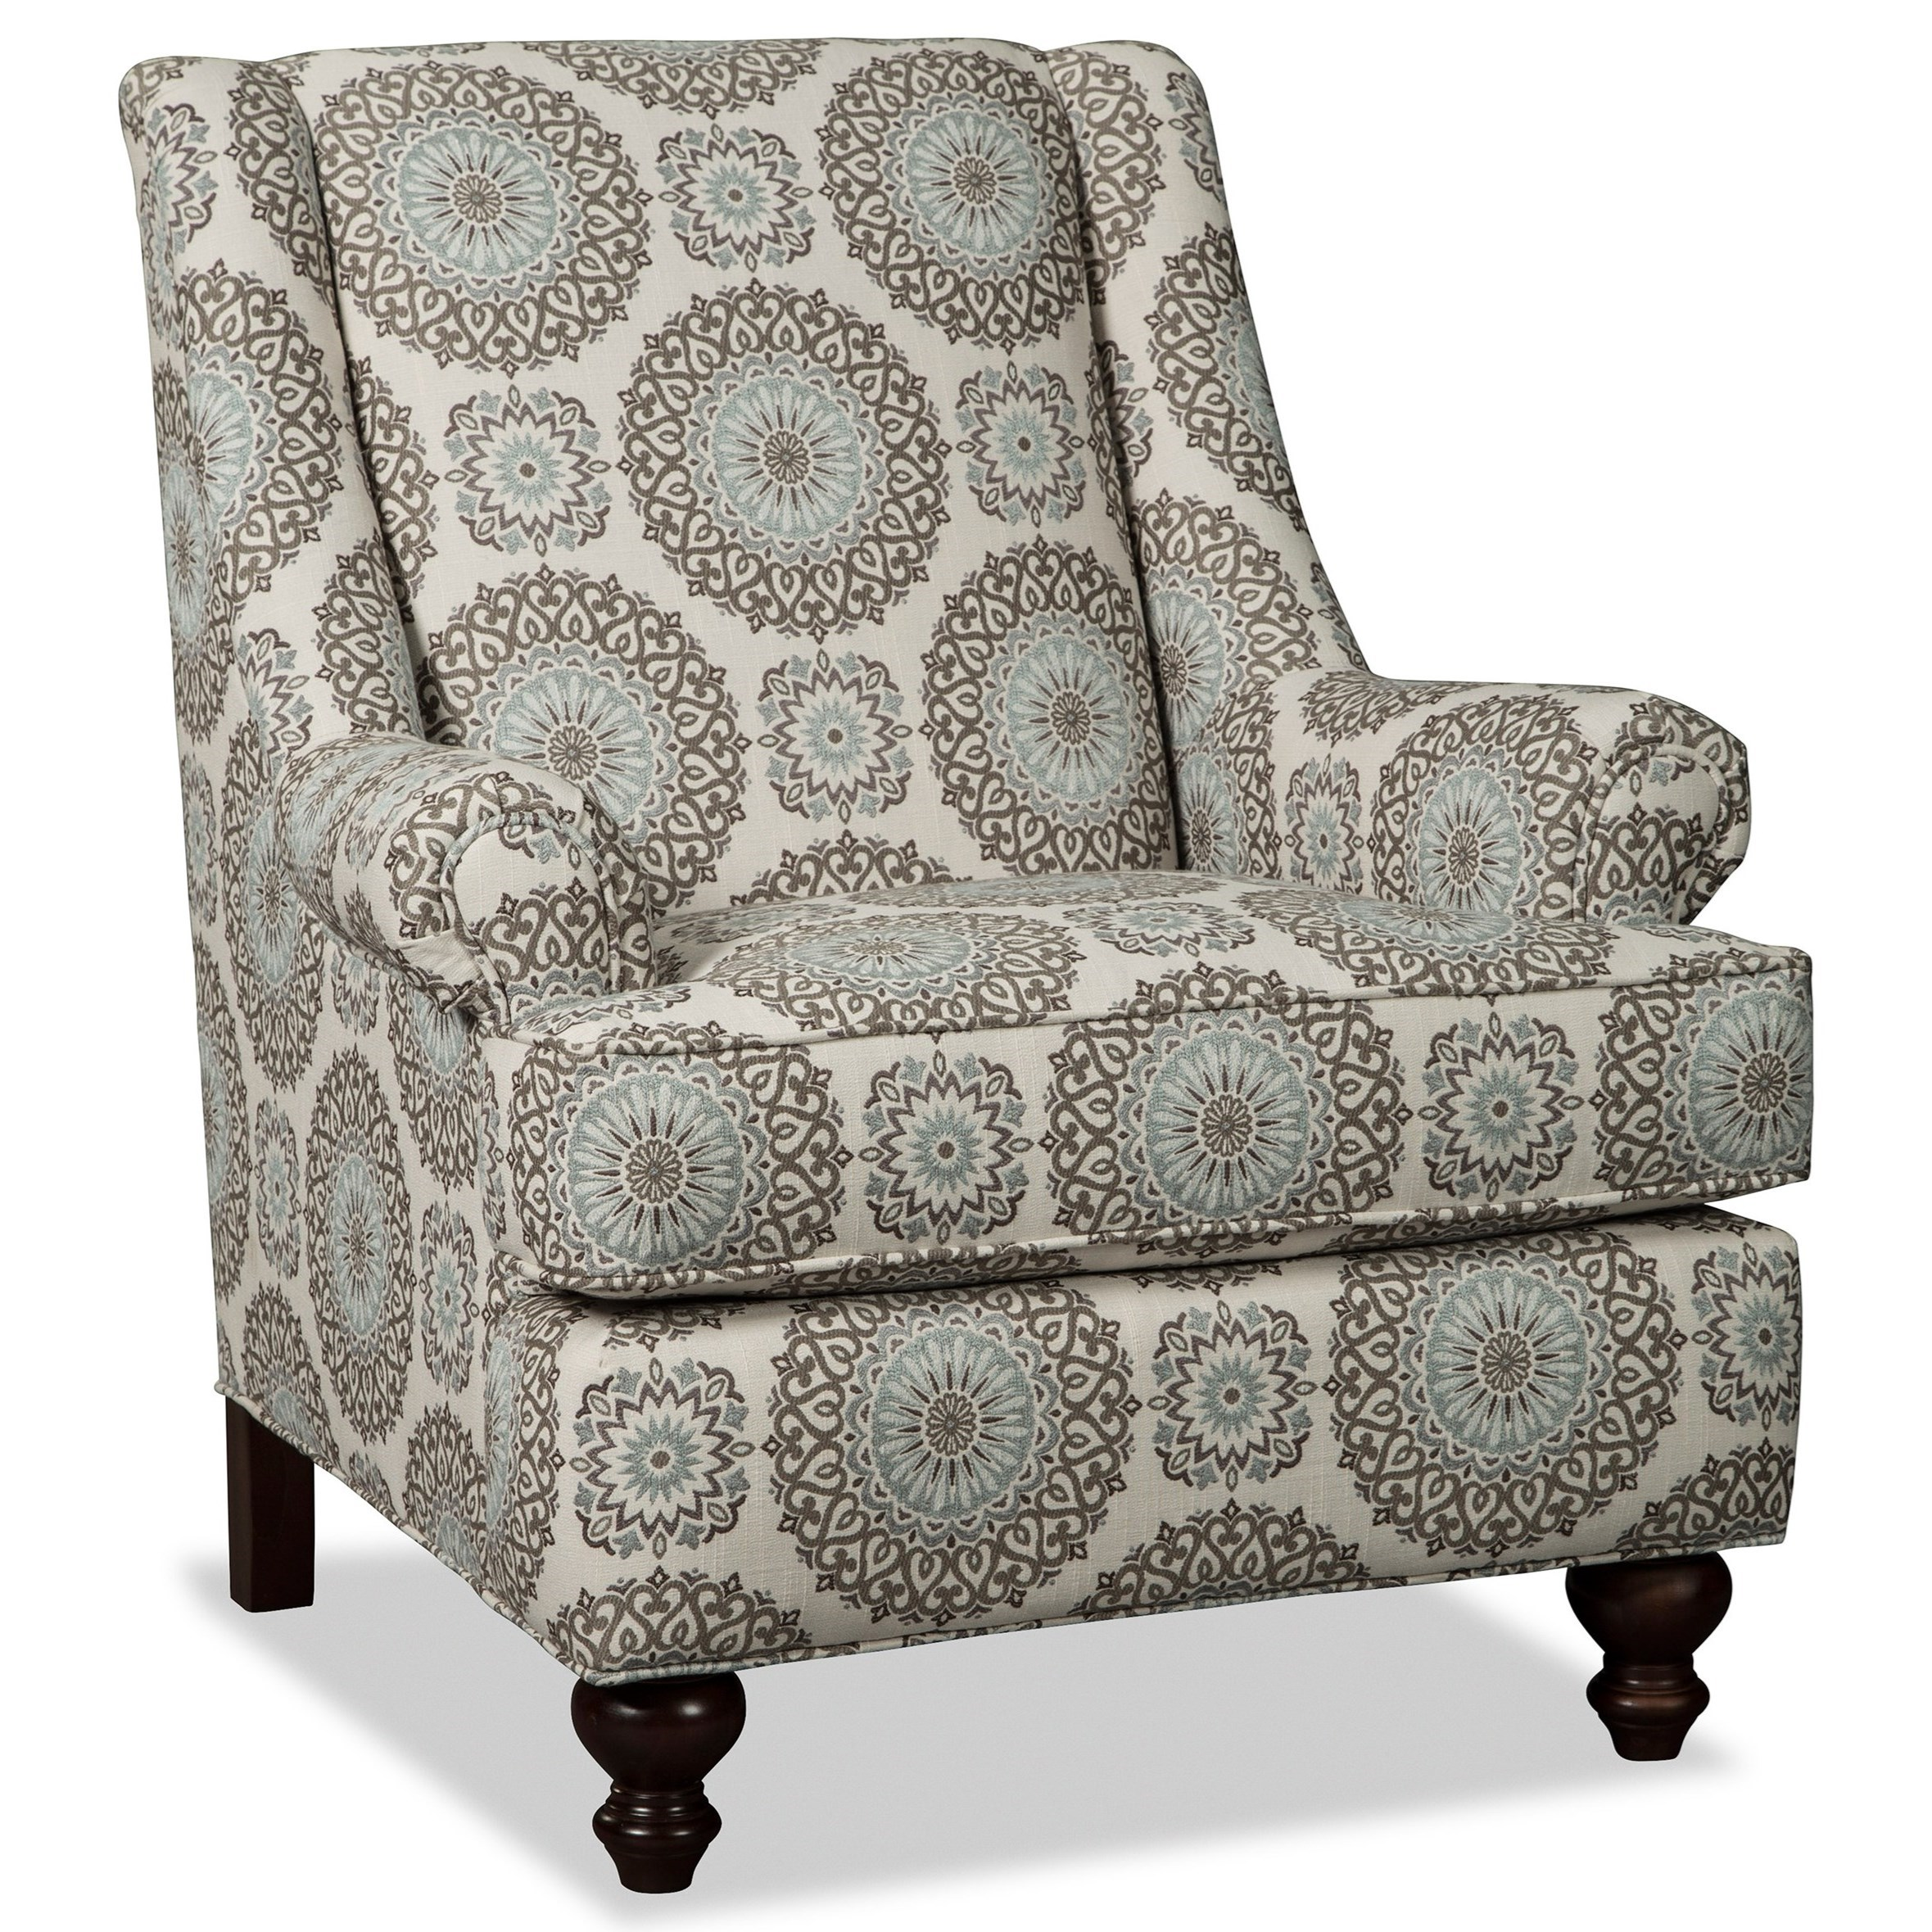 magnolia cambridge number chair chairs item gaines upholstered products home by accent joanna